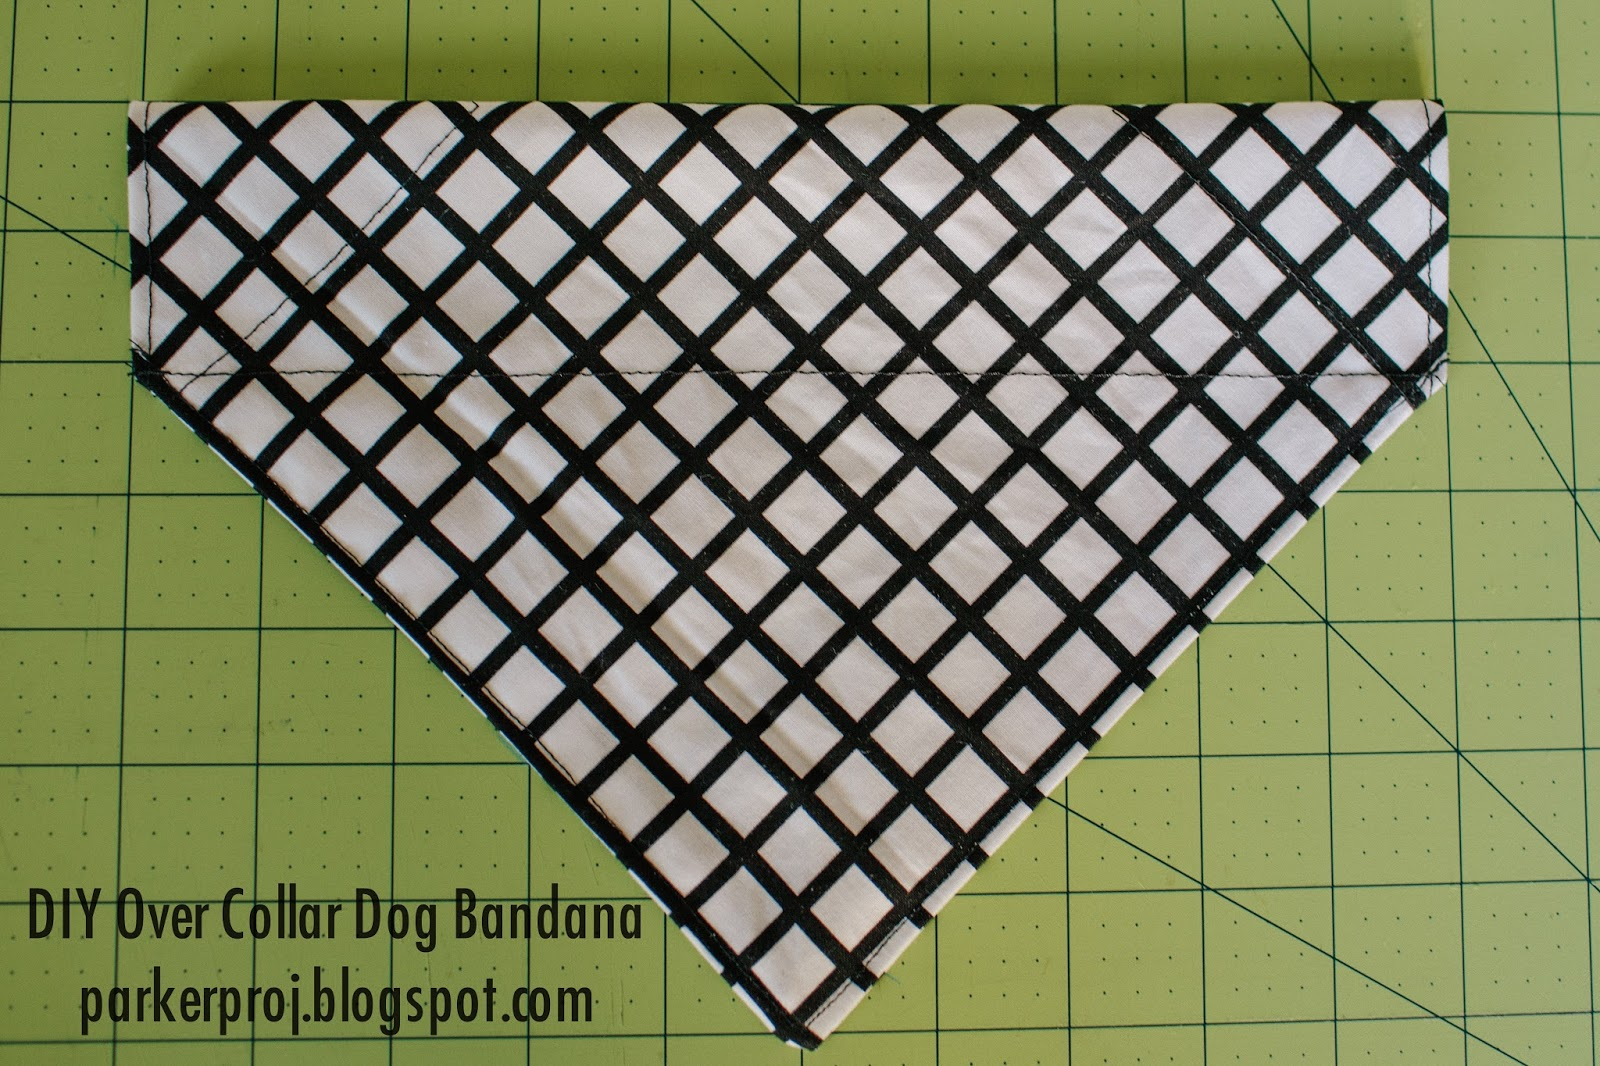 dog bandana template the parker project over the collar dog bandana tutorial